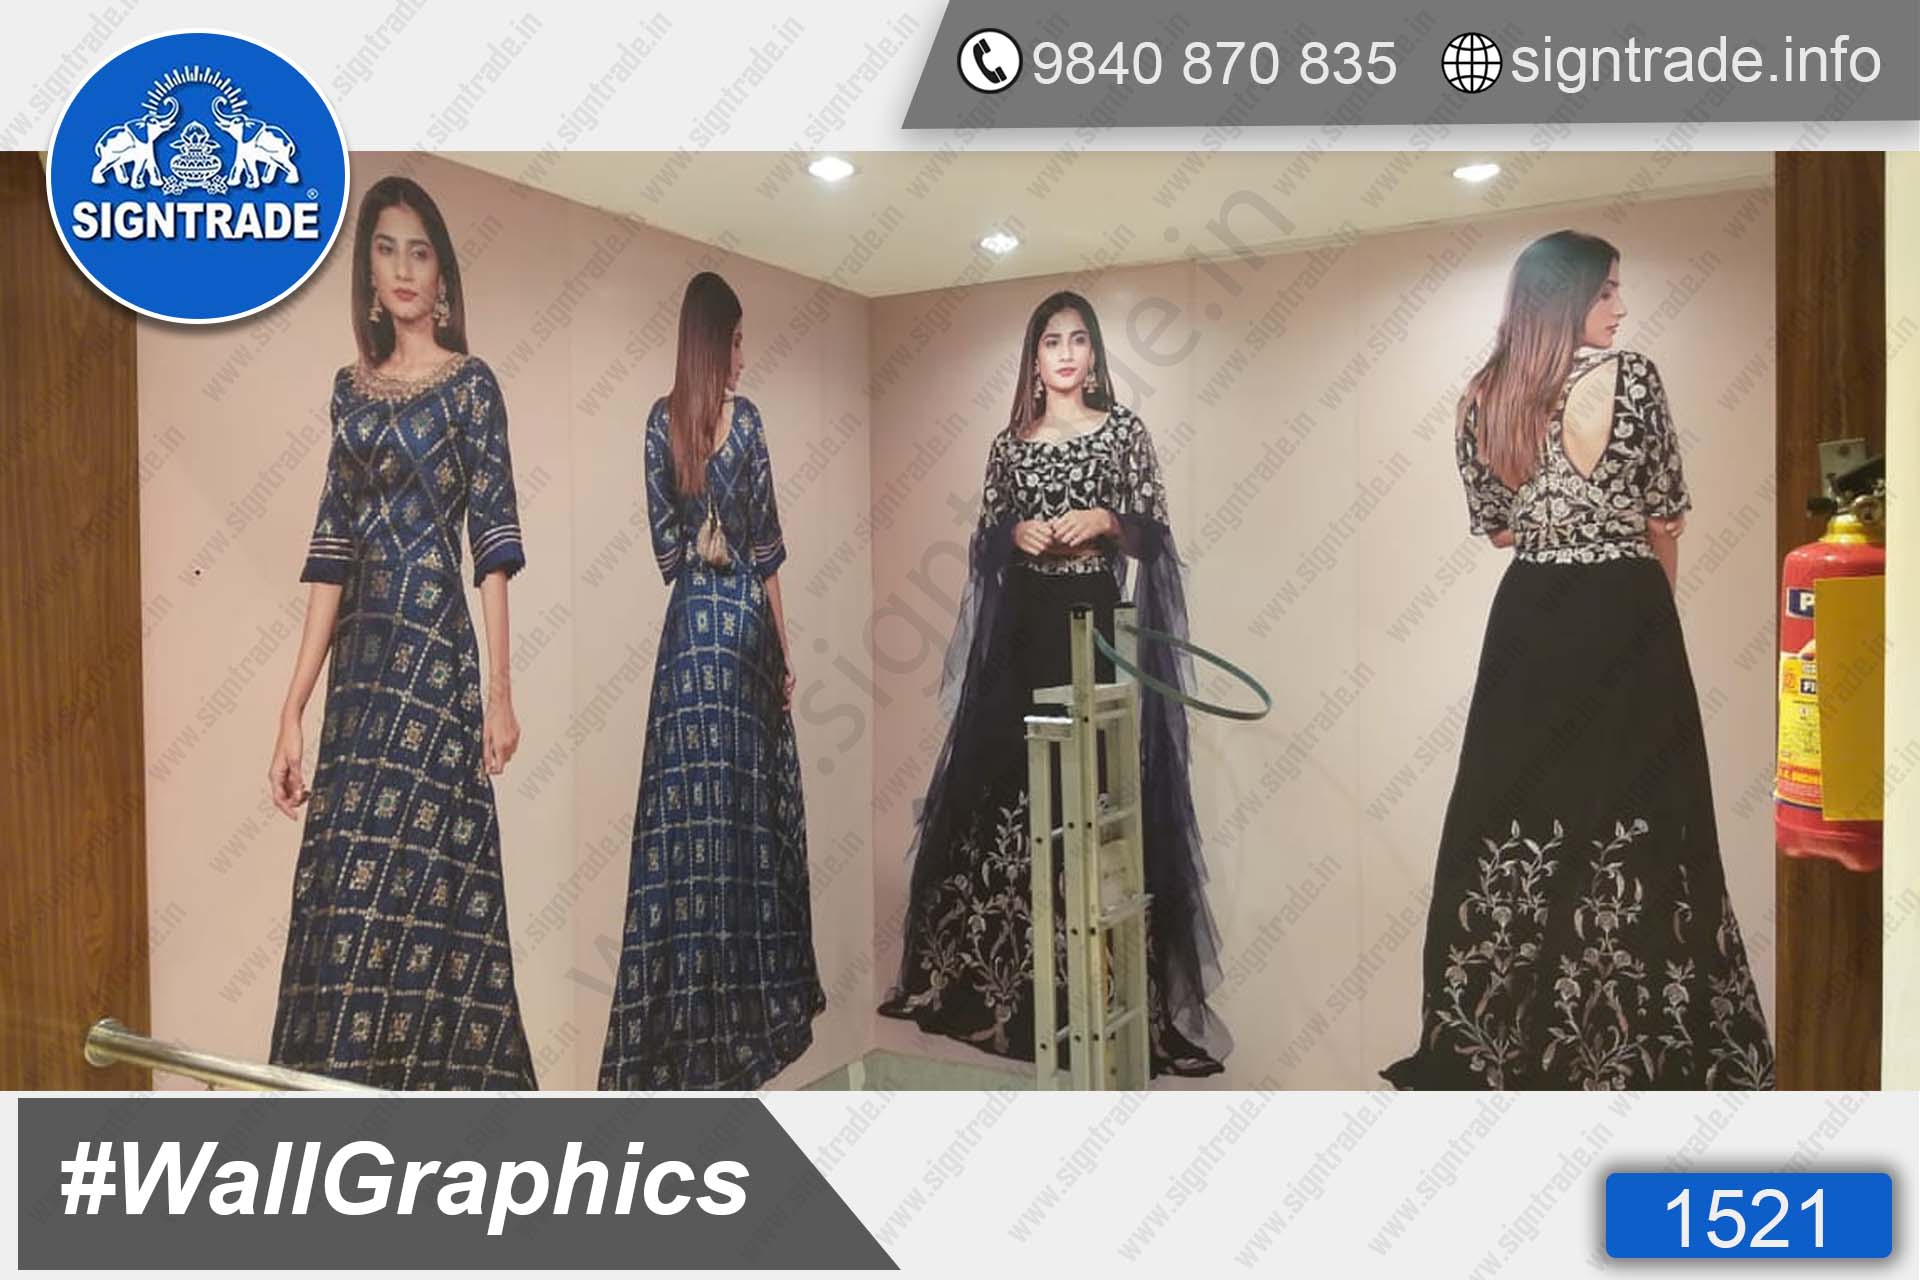 Kay The Fashion Bay, Mount Road, Chennai - SIGNTRADE - Door Graphics, Vinyl Graphics, Vinyl Printing Service in Chennai